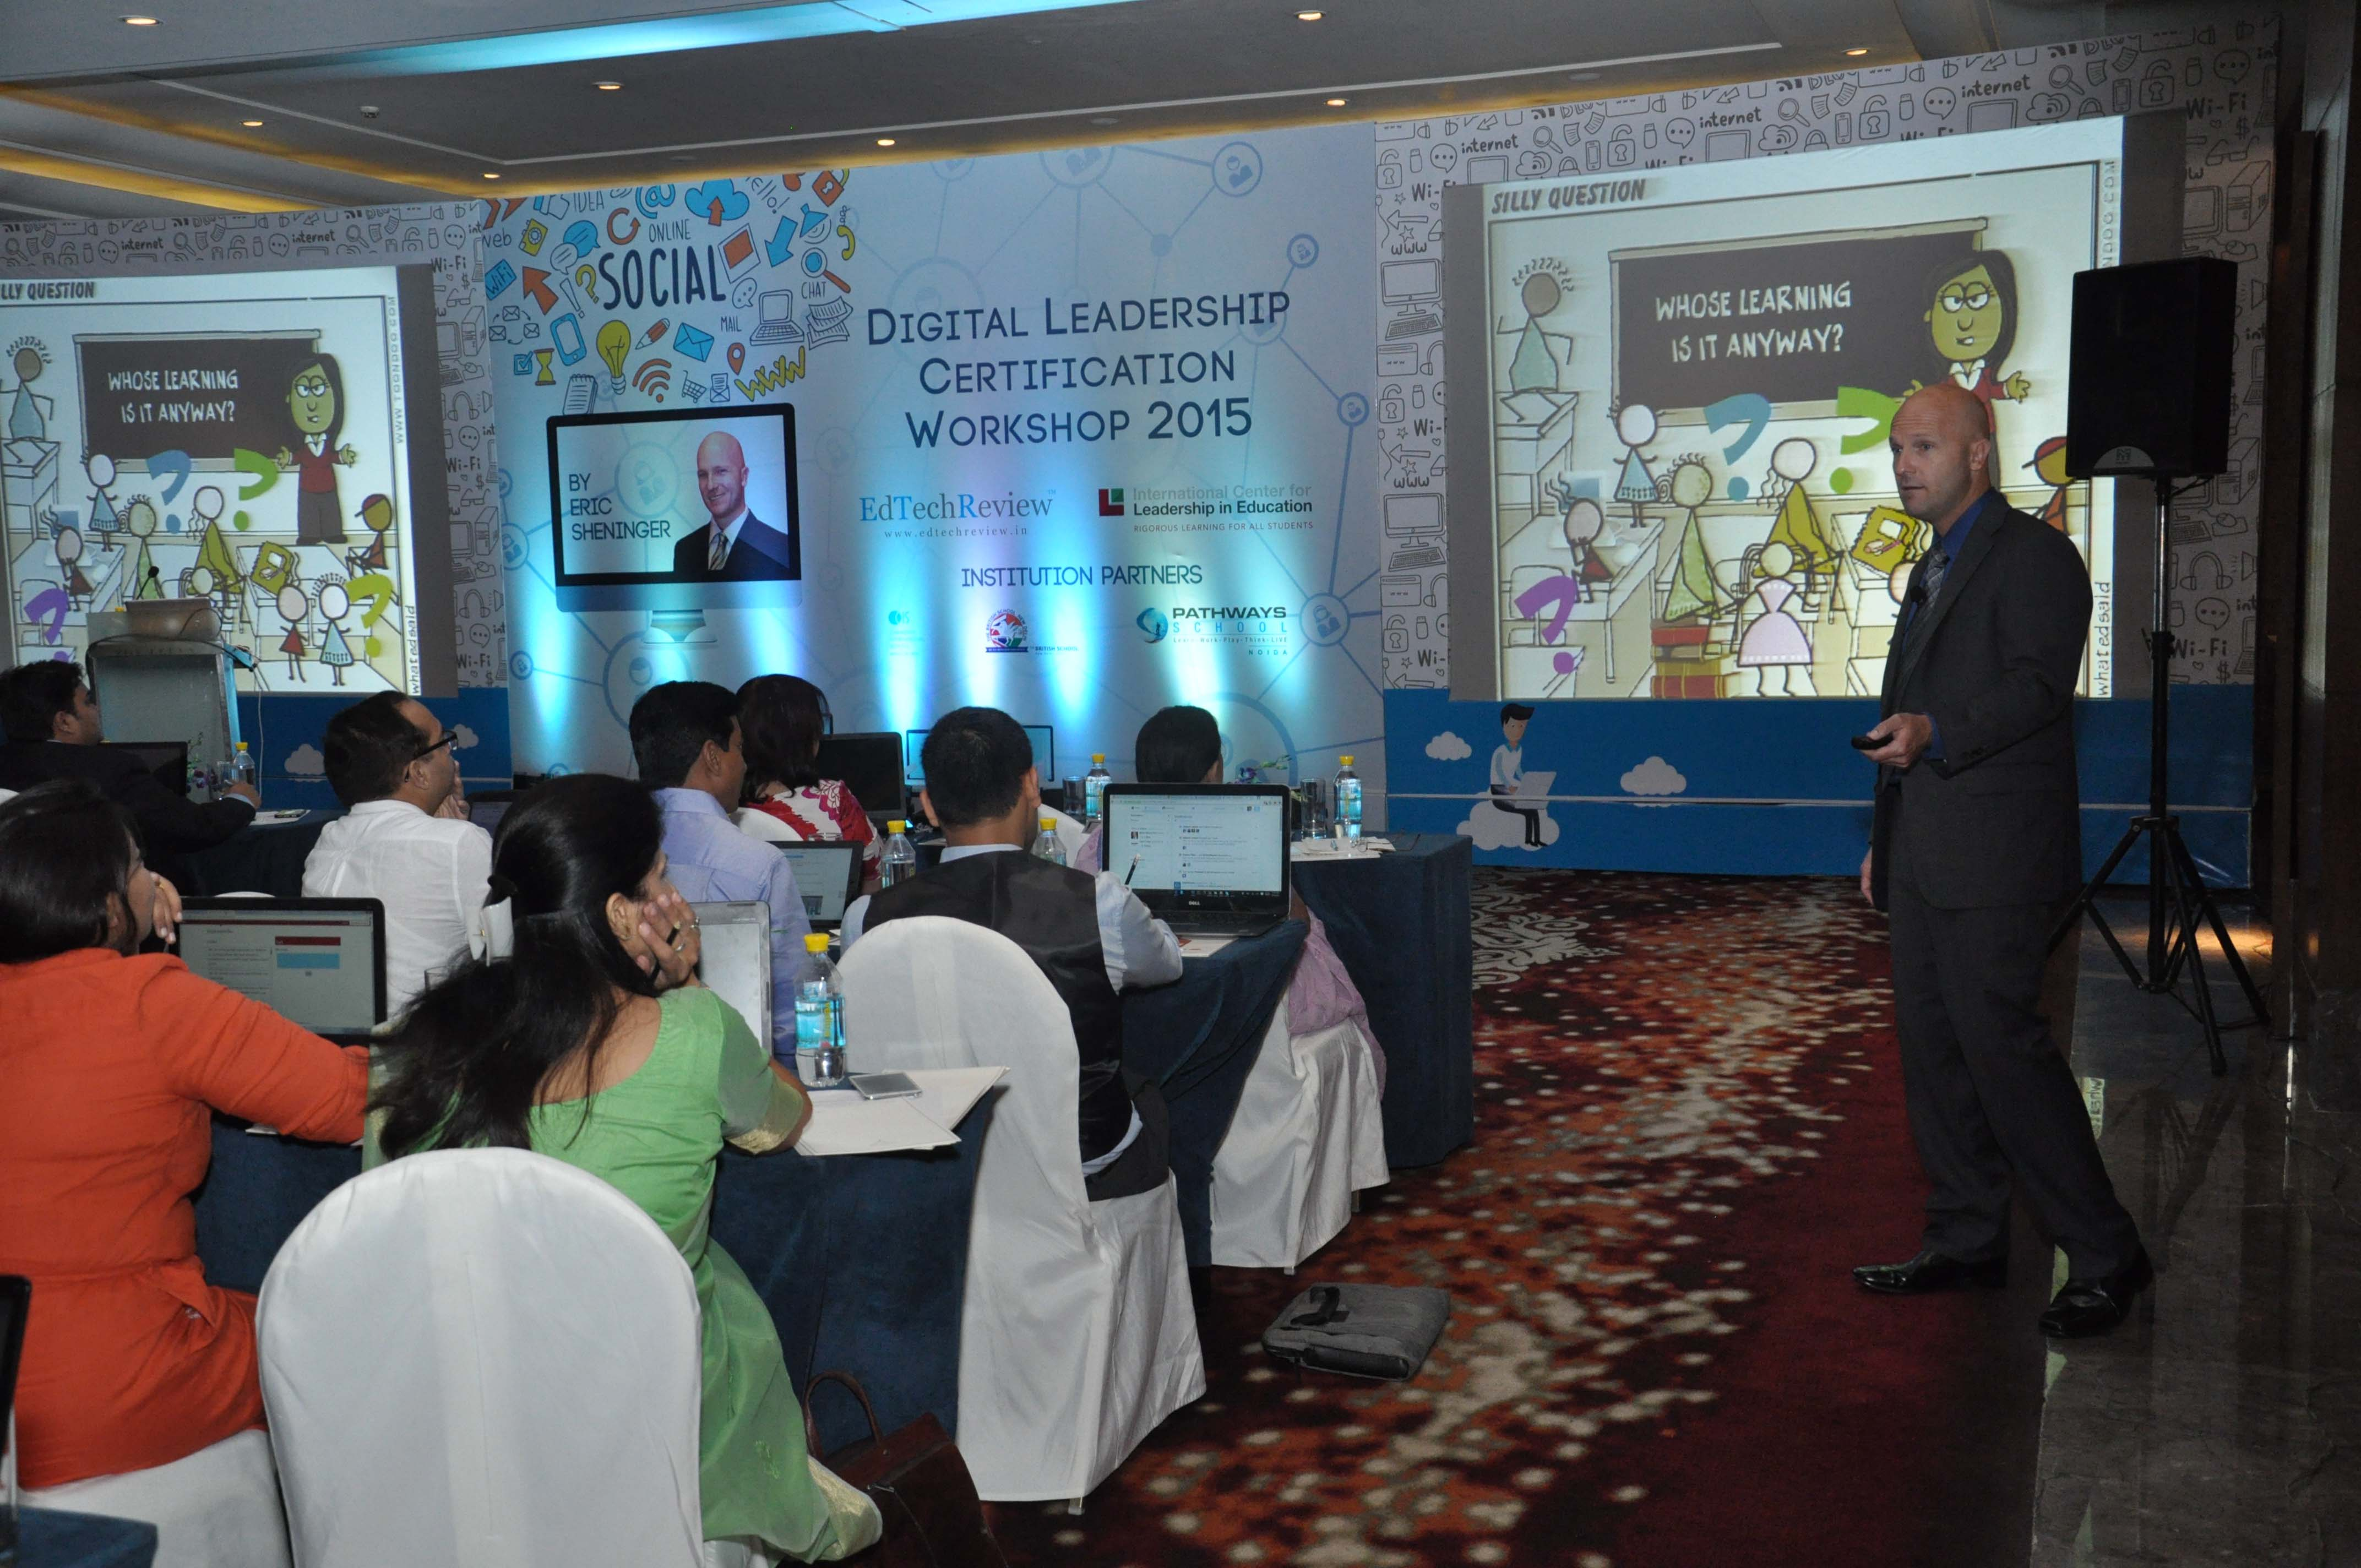 Educational Leadership for the Digital Age